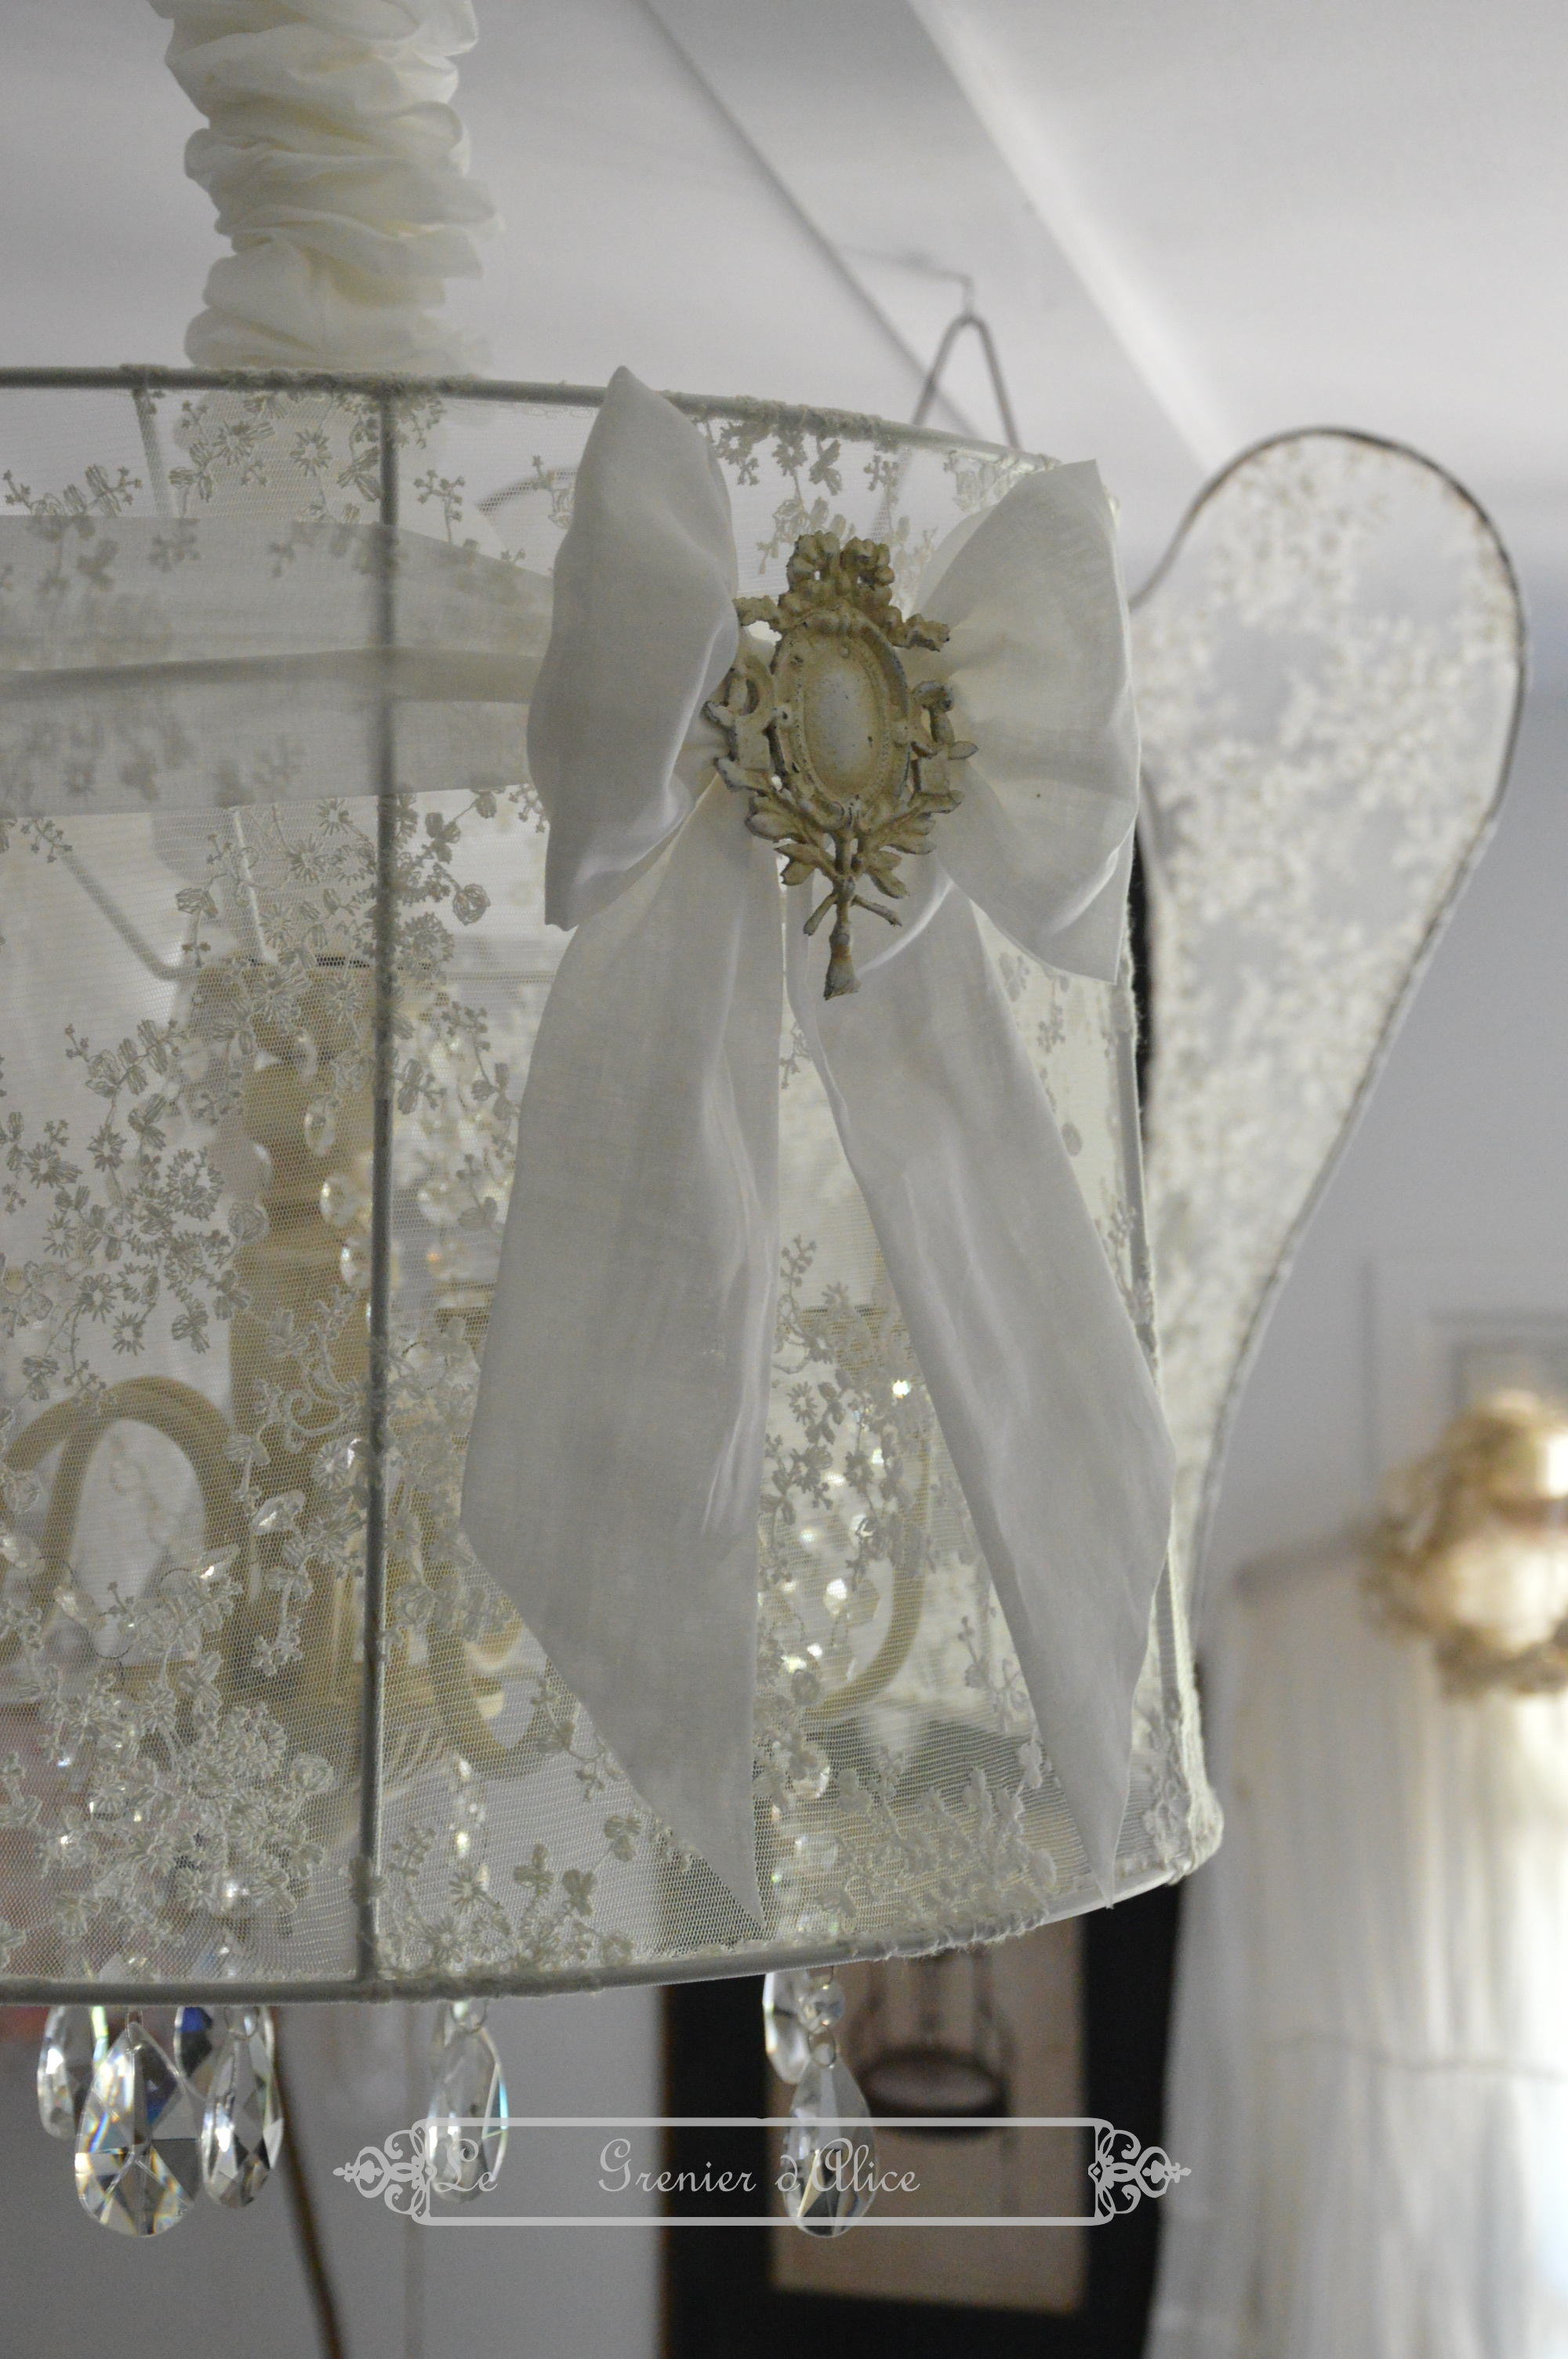 Suspension Abat Jour Blanc Le Grenier D'alice Shabby Chic Et Romantique French Decor